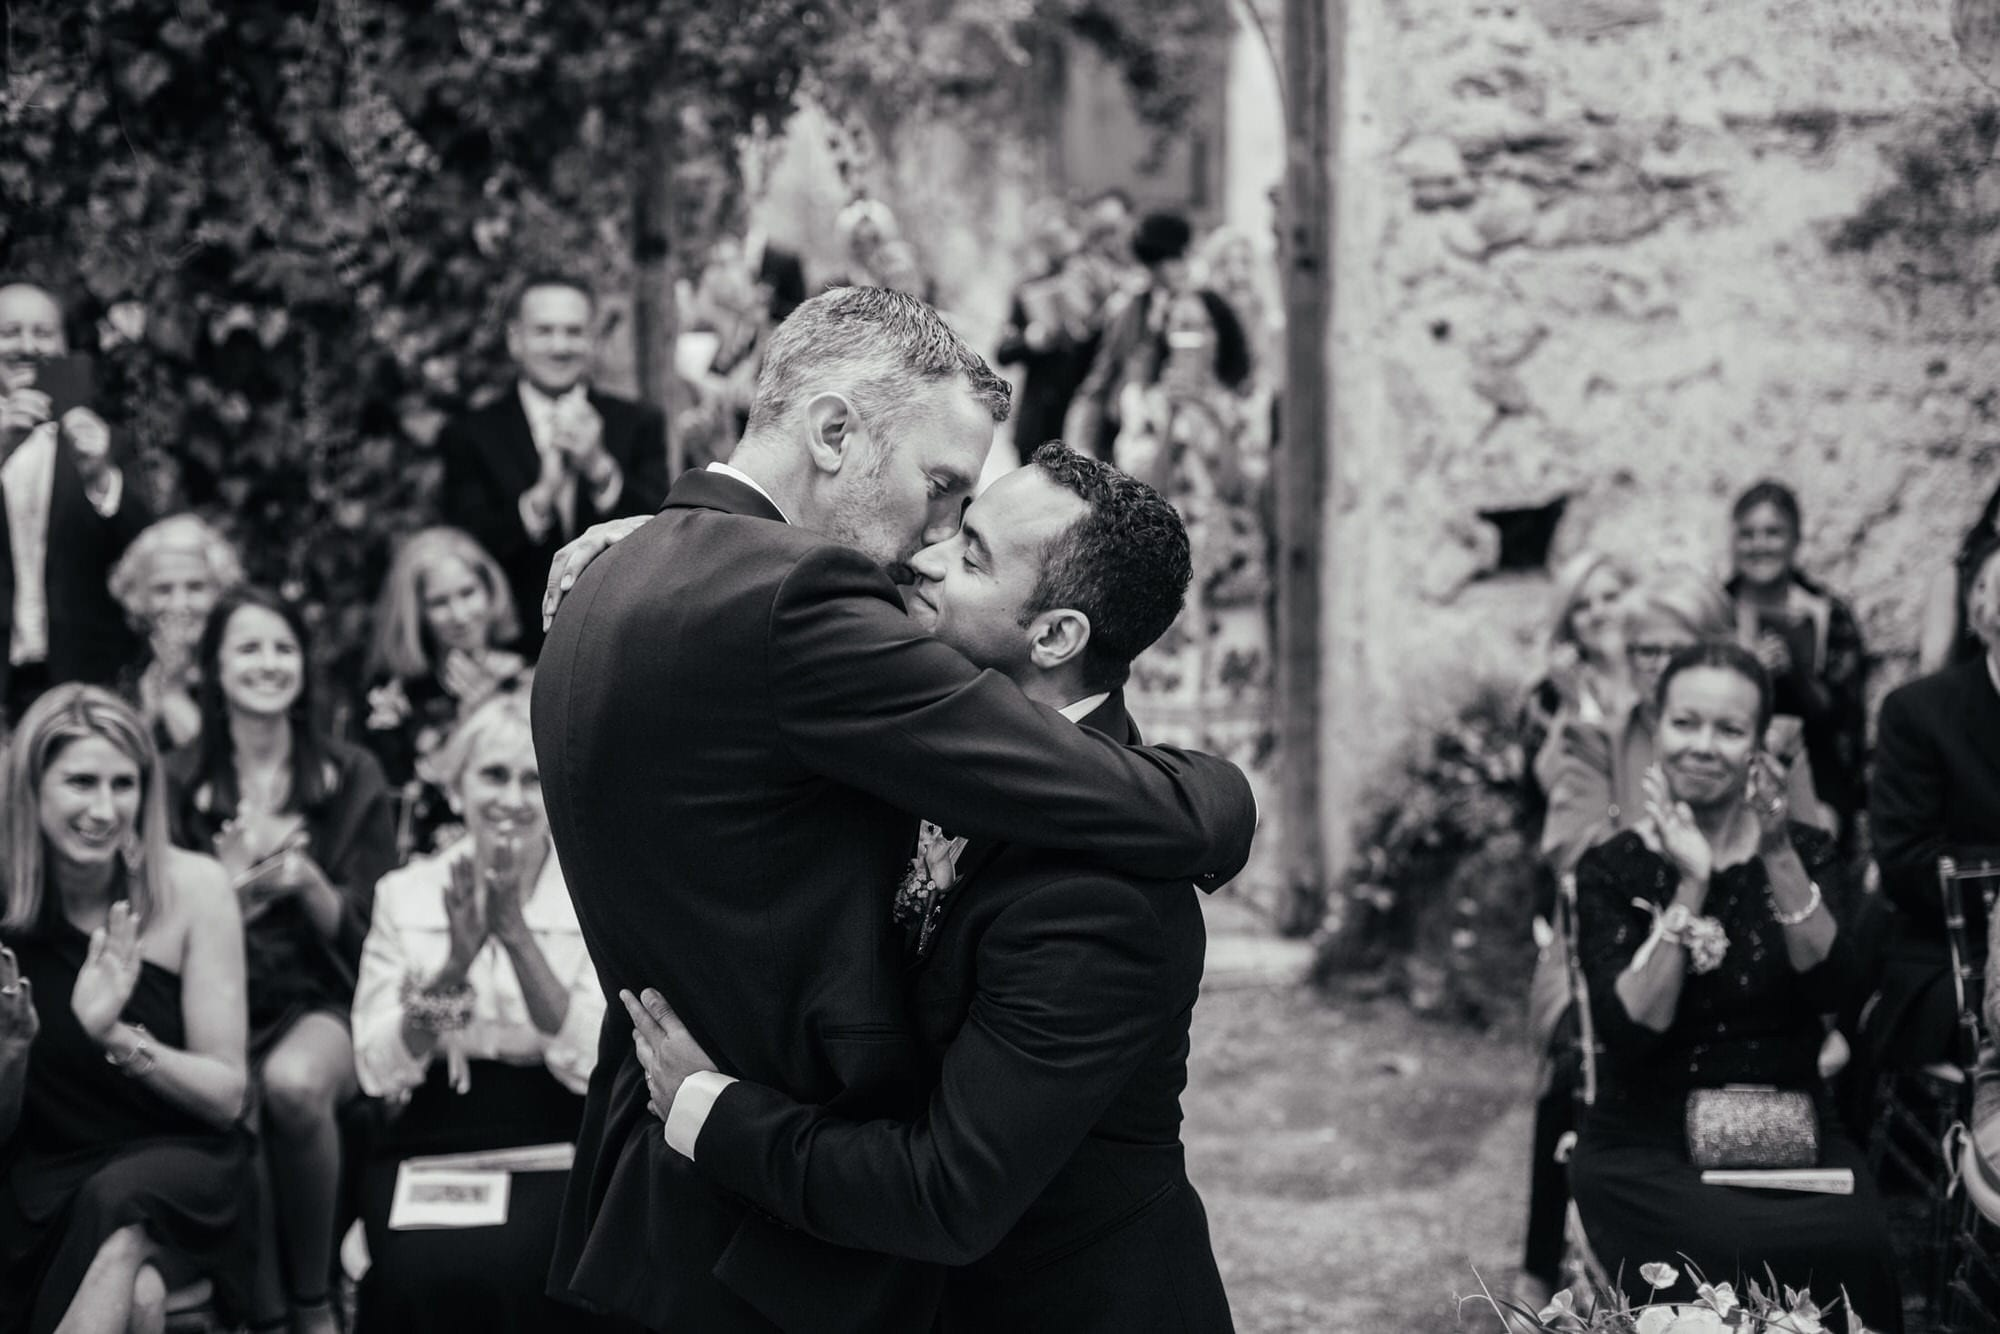 two grooms hug with passion after exchanging rings their rings at their wedding in Lisbon